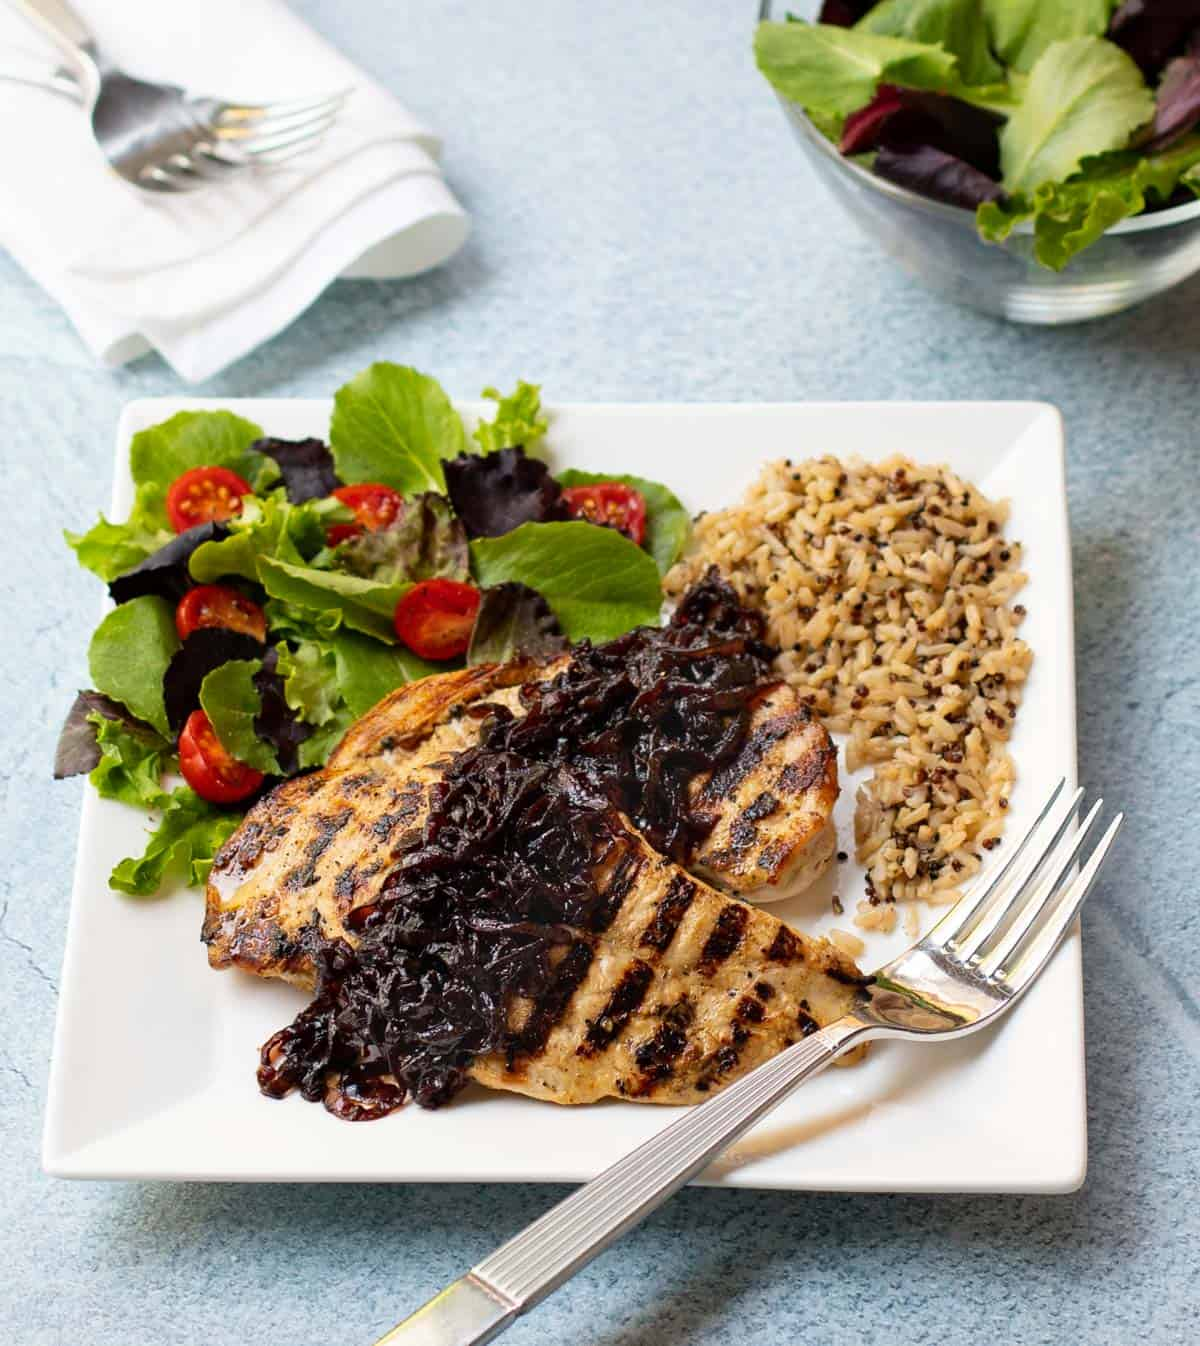 Grilled chicken breasts with caramelized red onion, quinoa and brown rice, and tossed salad